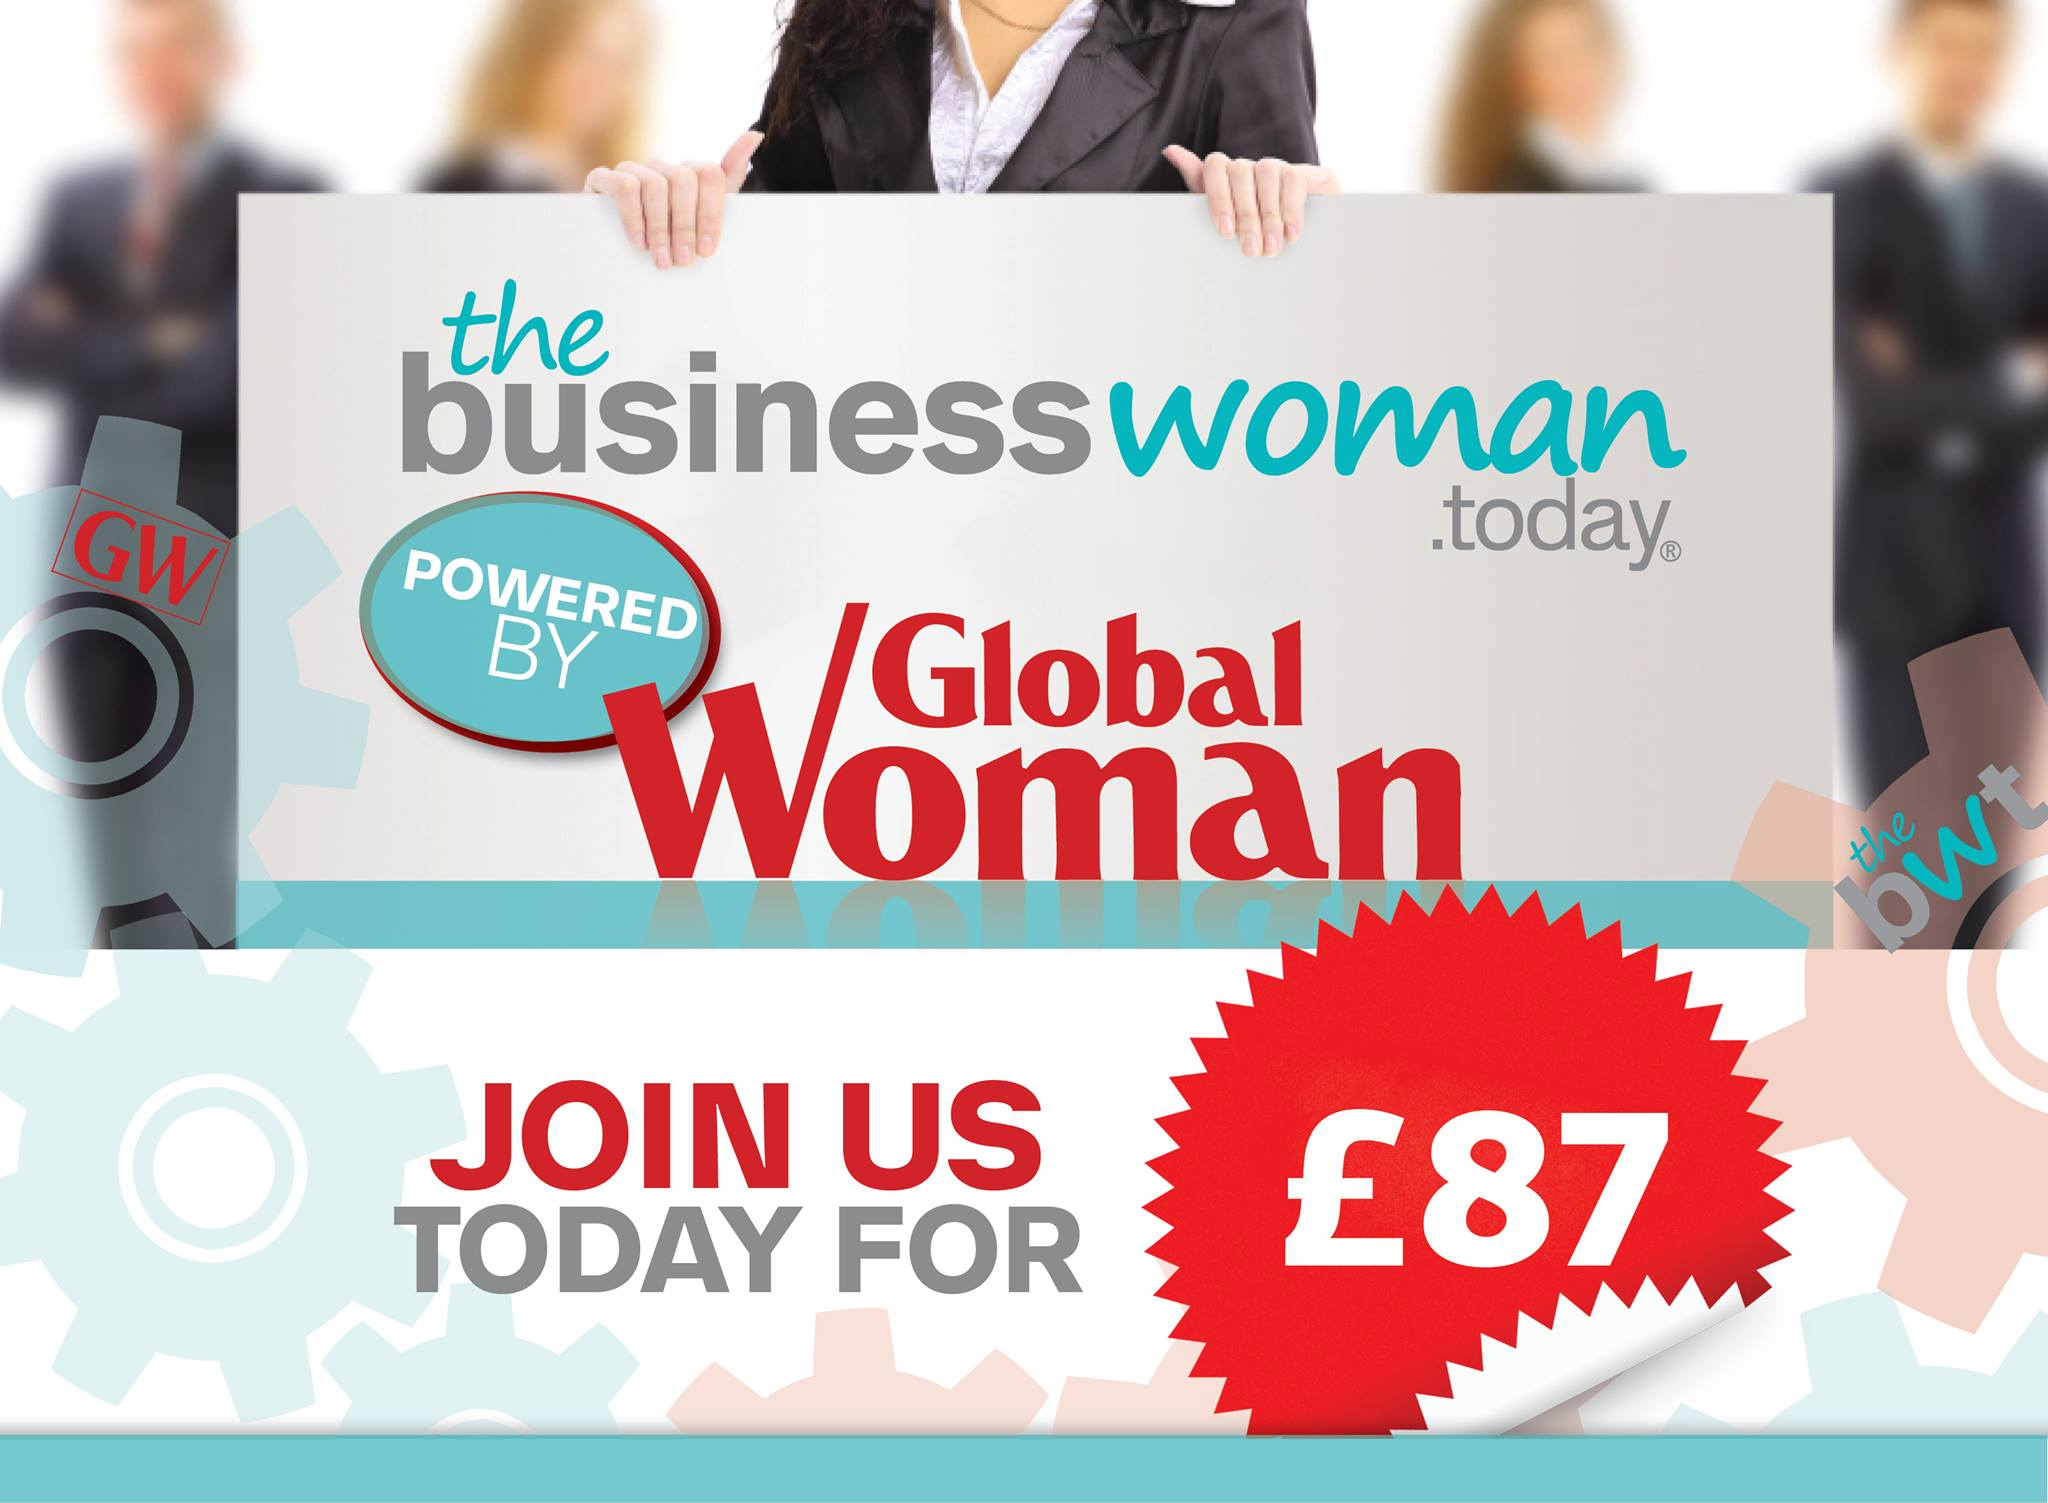 http://www.thebusinesswoman.today